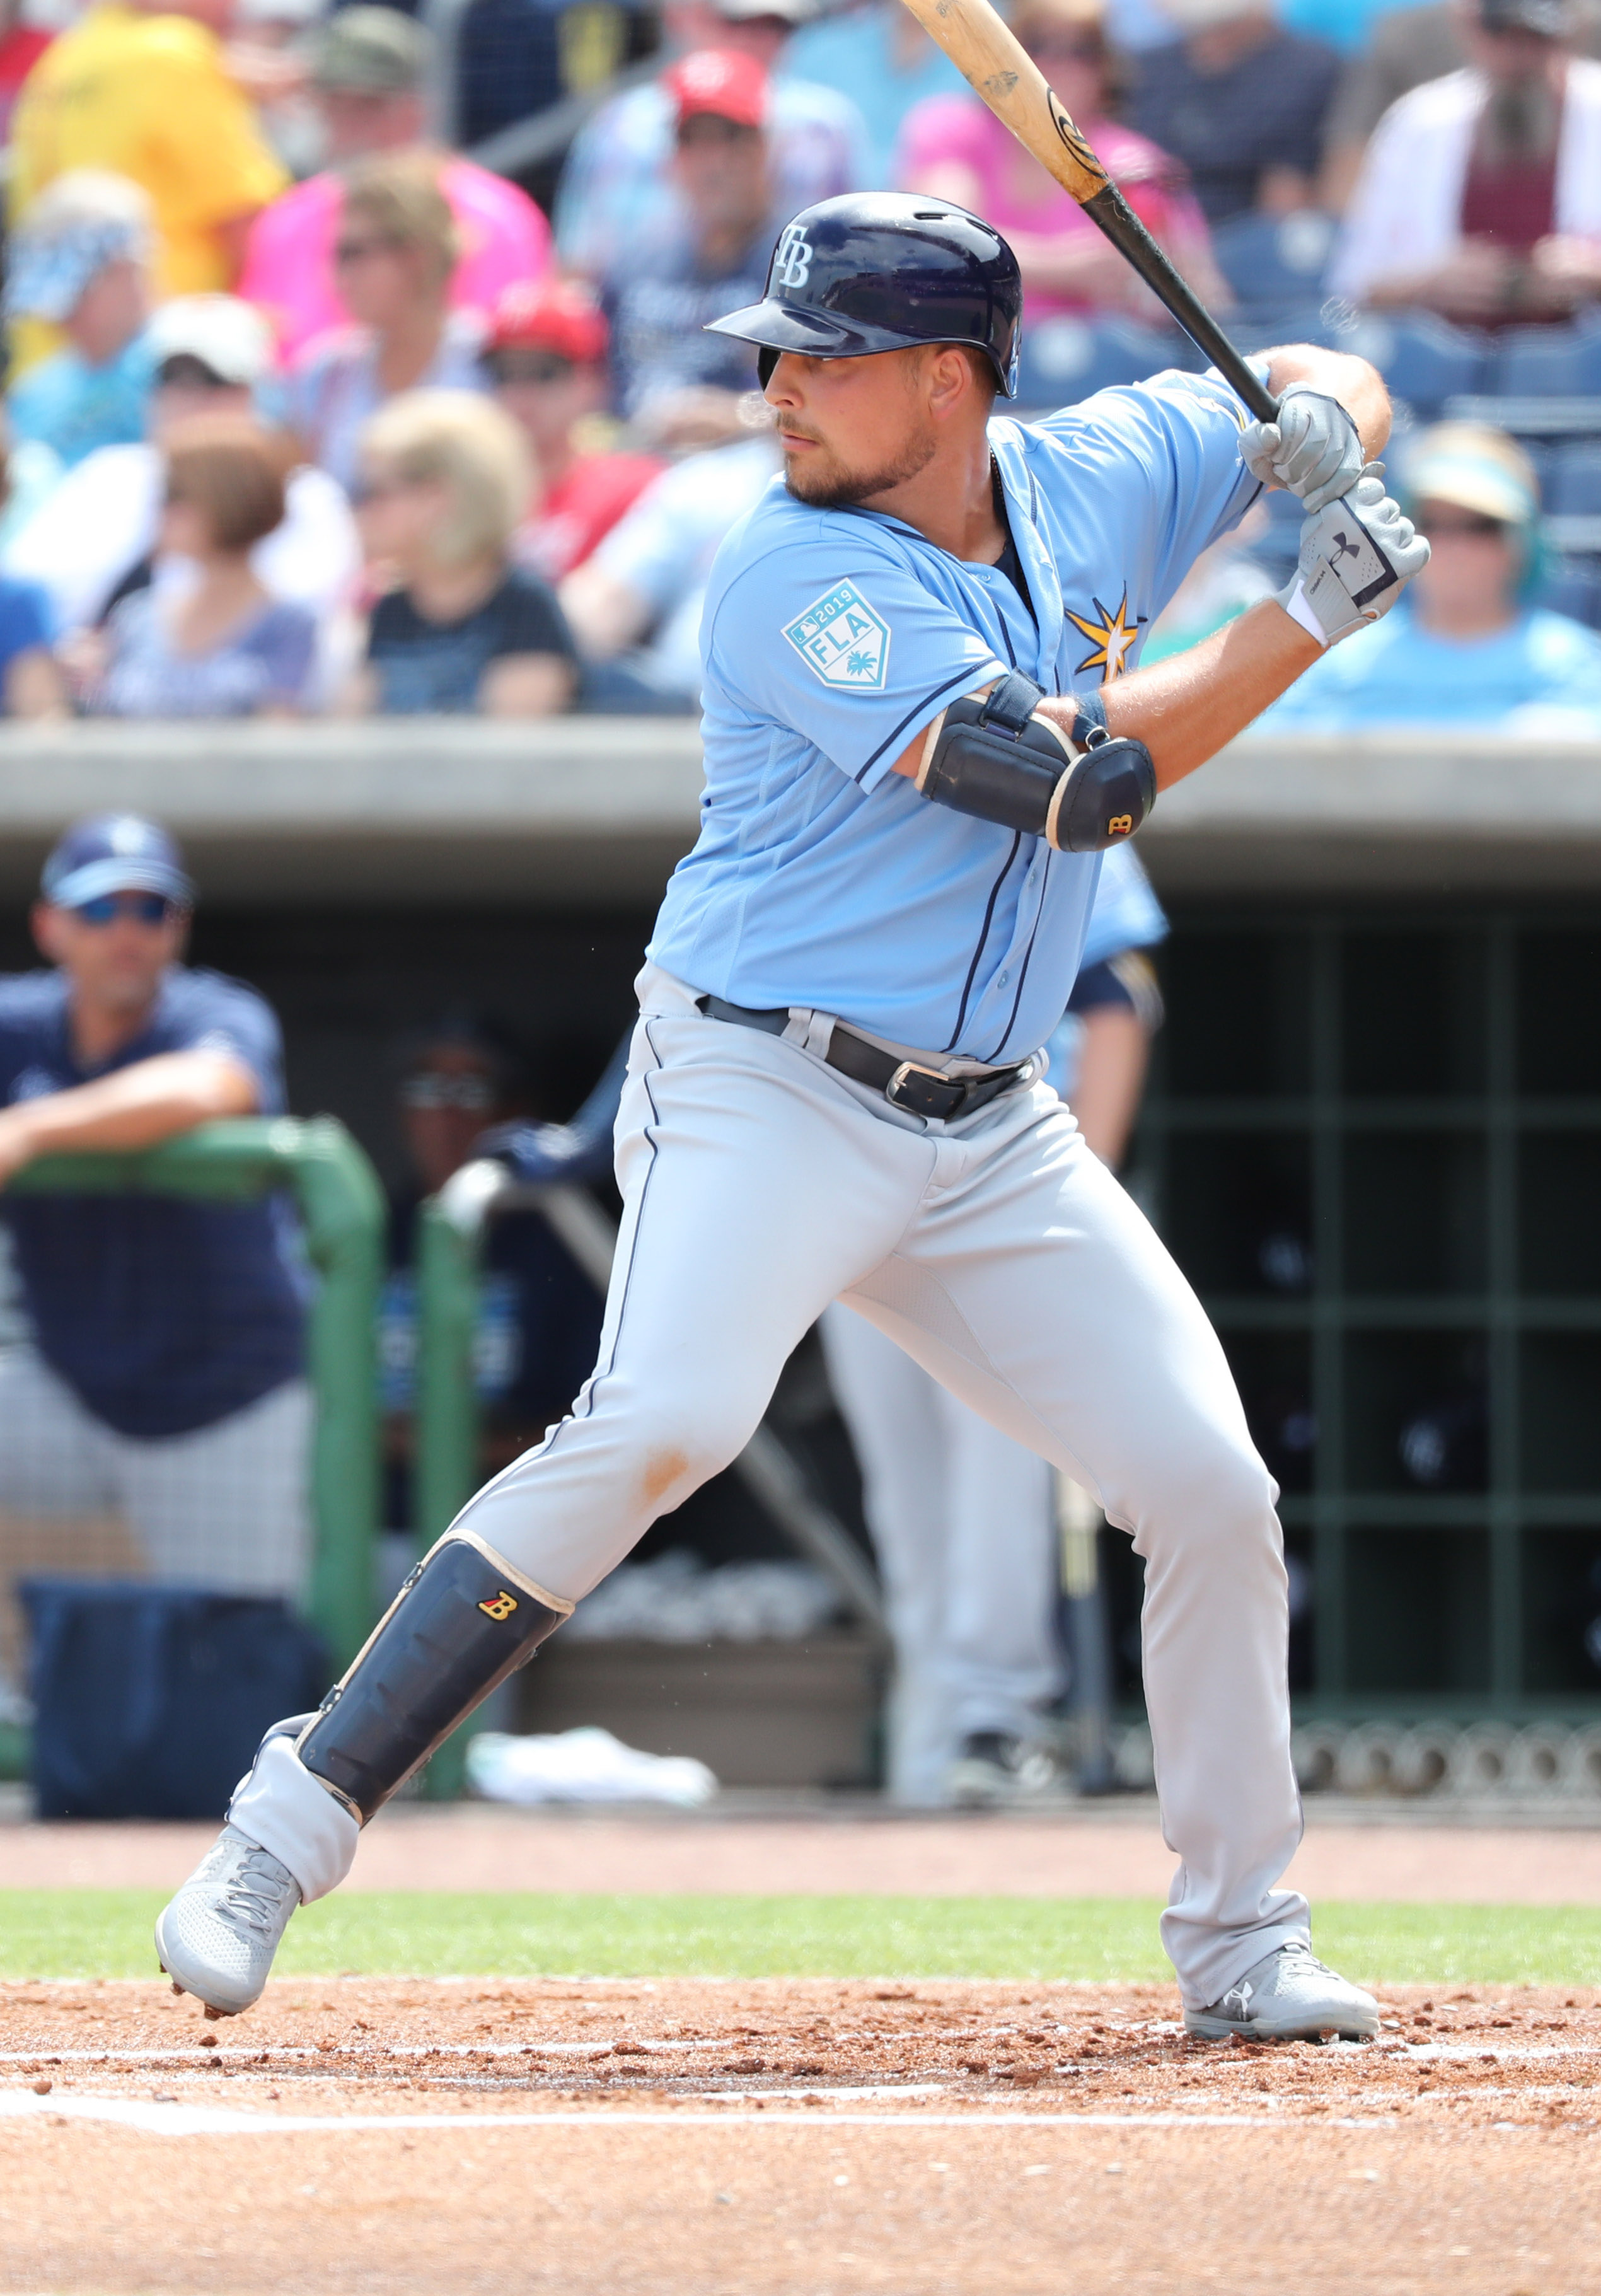 on sale a13a0 52933 Rays Promote Nate Lowe